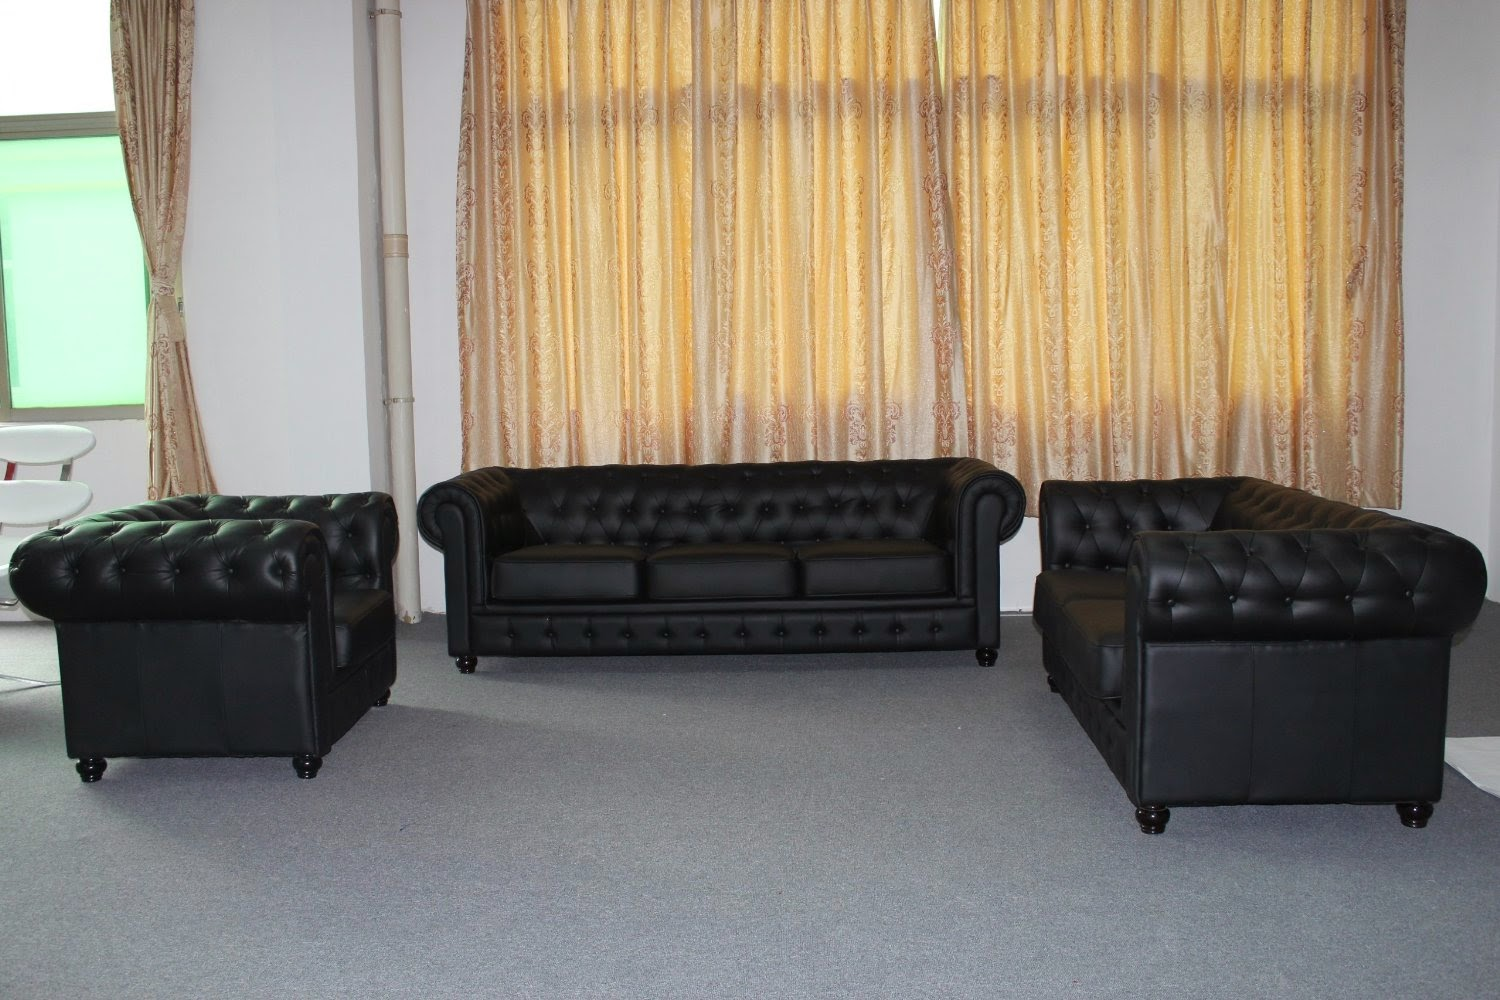 chesterfield sofa modern chesterfield sofa. Black Bedroom Furniture Sets. Home Design Ideas